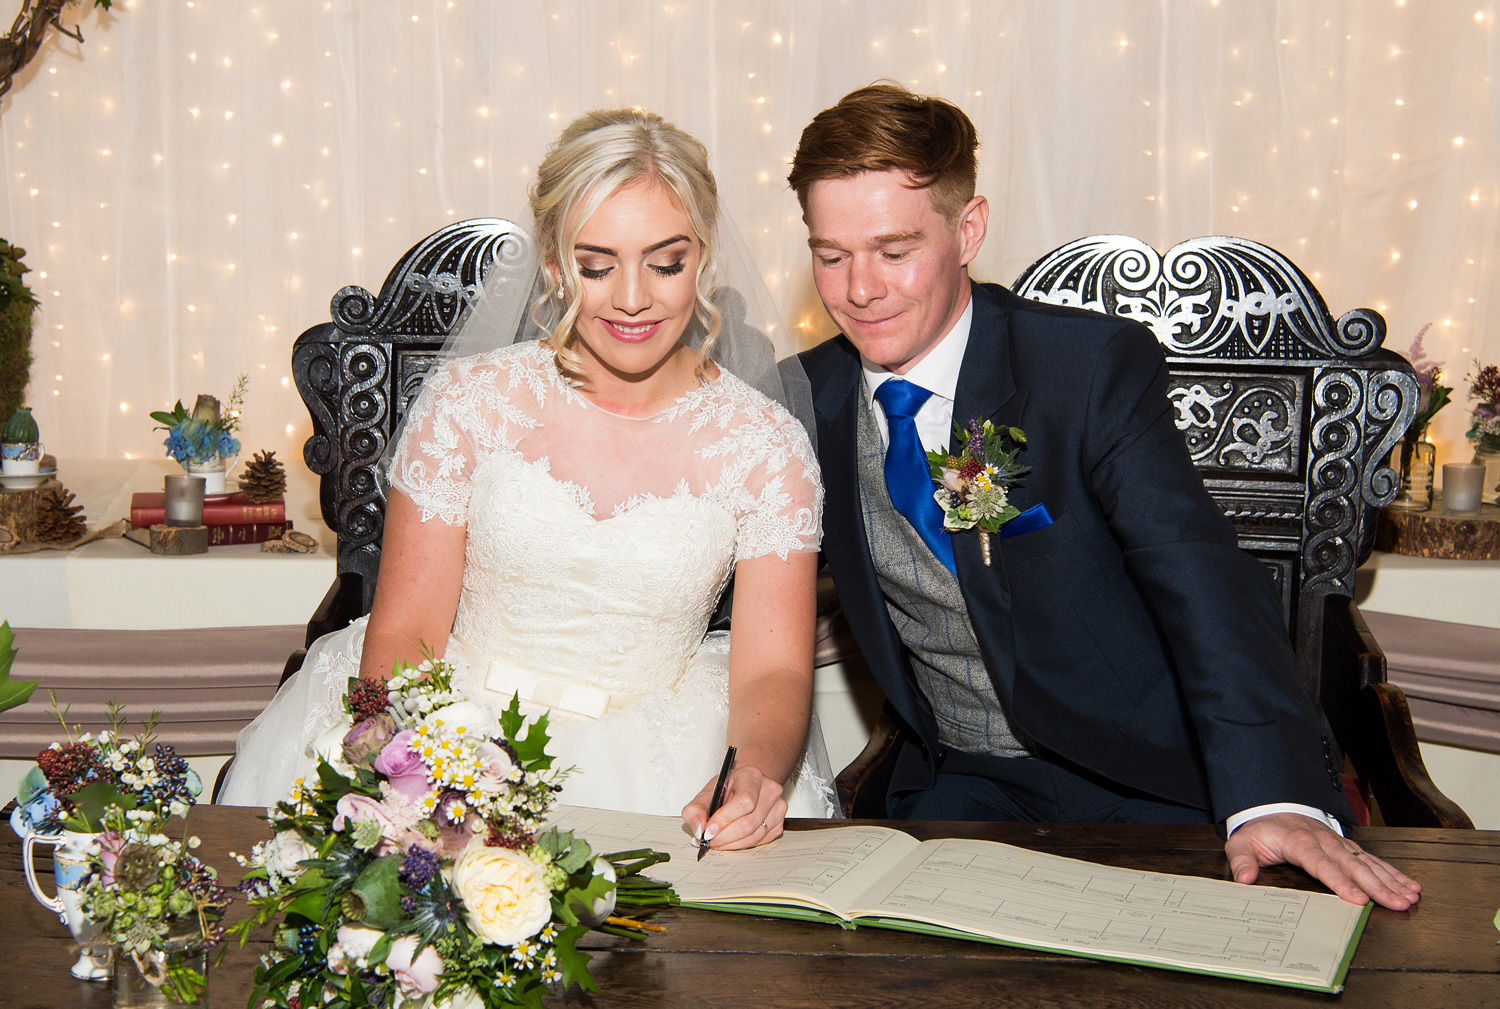 The signing of the wedding register at Samlesbury Hall